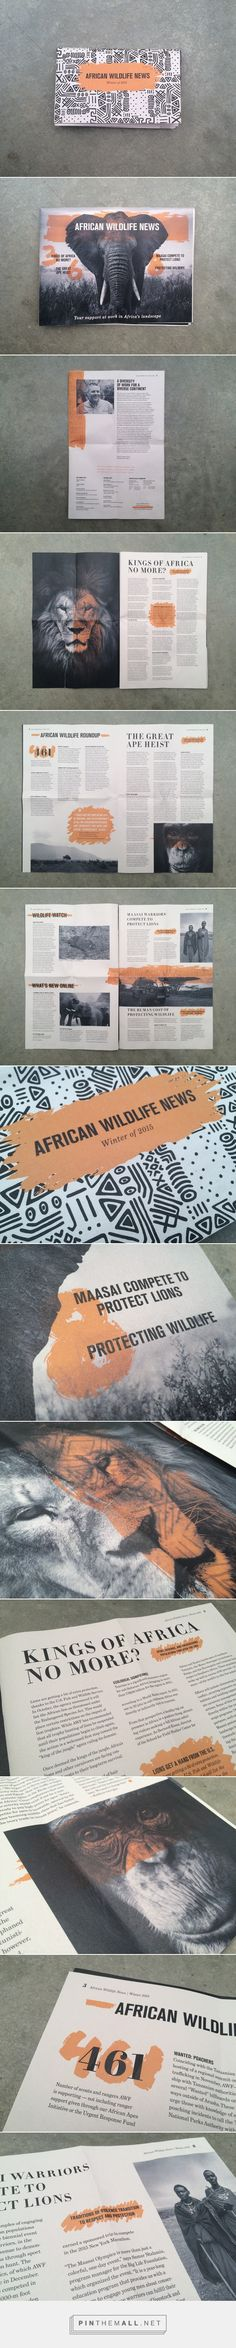 African Wildlife News by Jeremy Murray